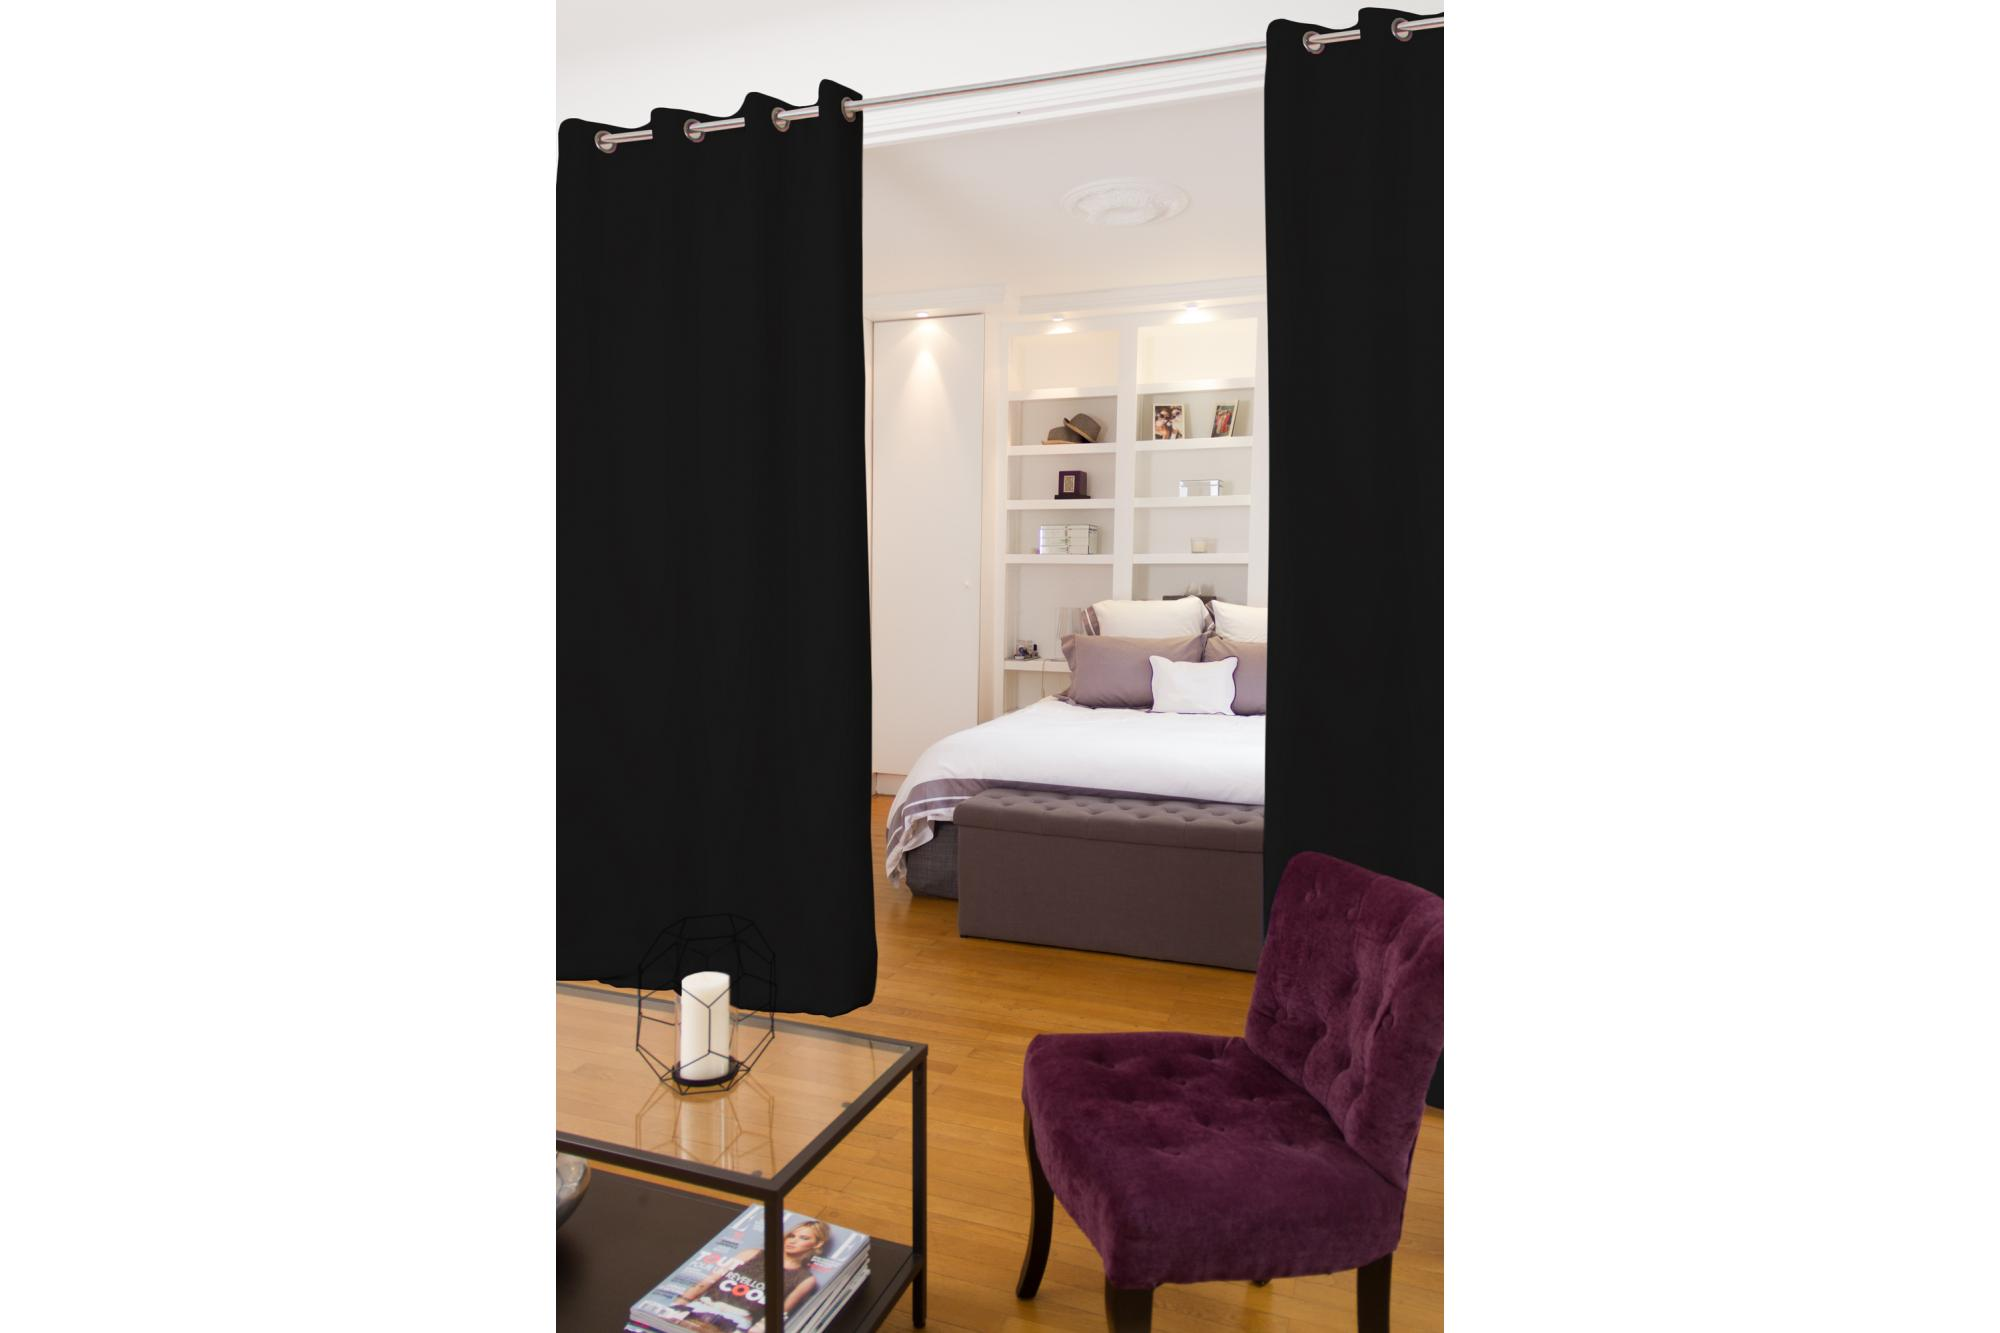 Curtain Room Divider Ikea | Dividing A Bedroom with Curtains | Room Divider Curtains